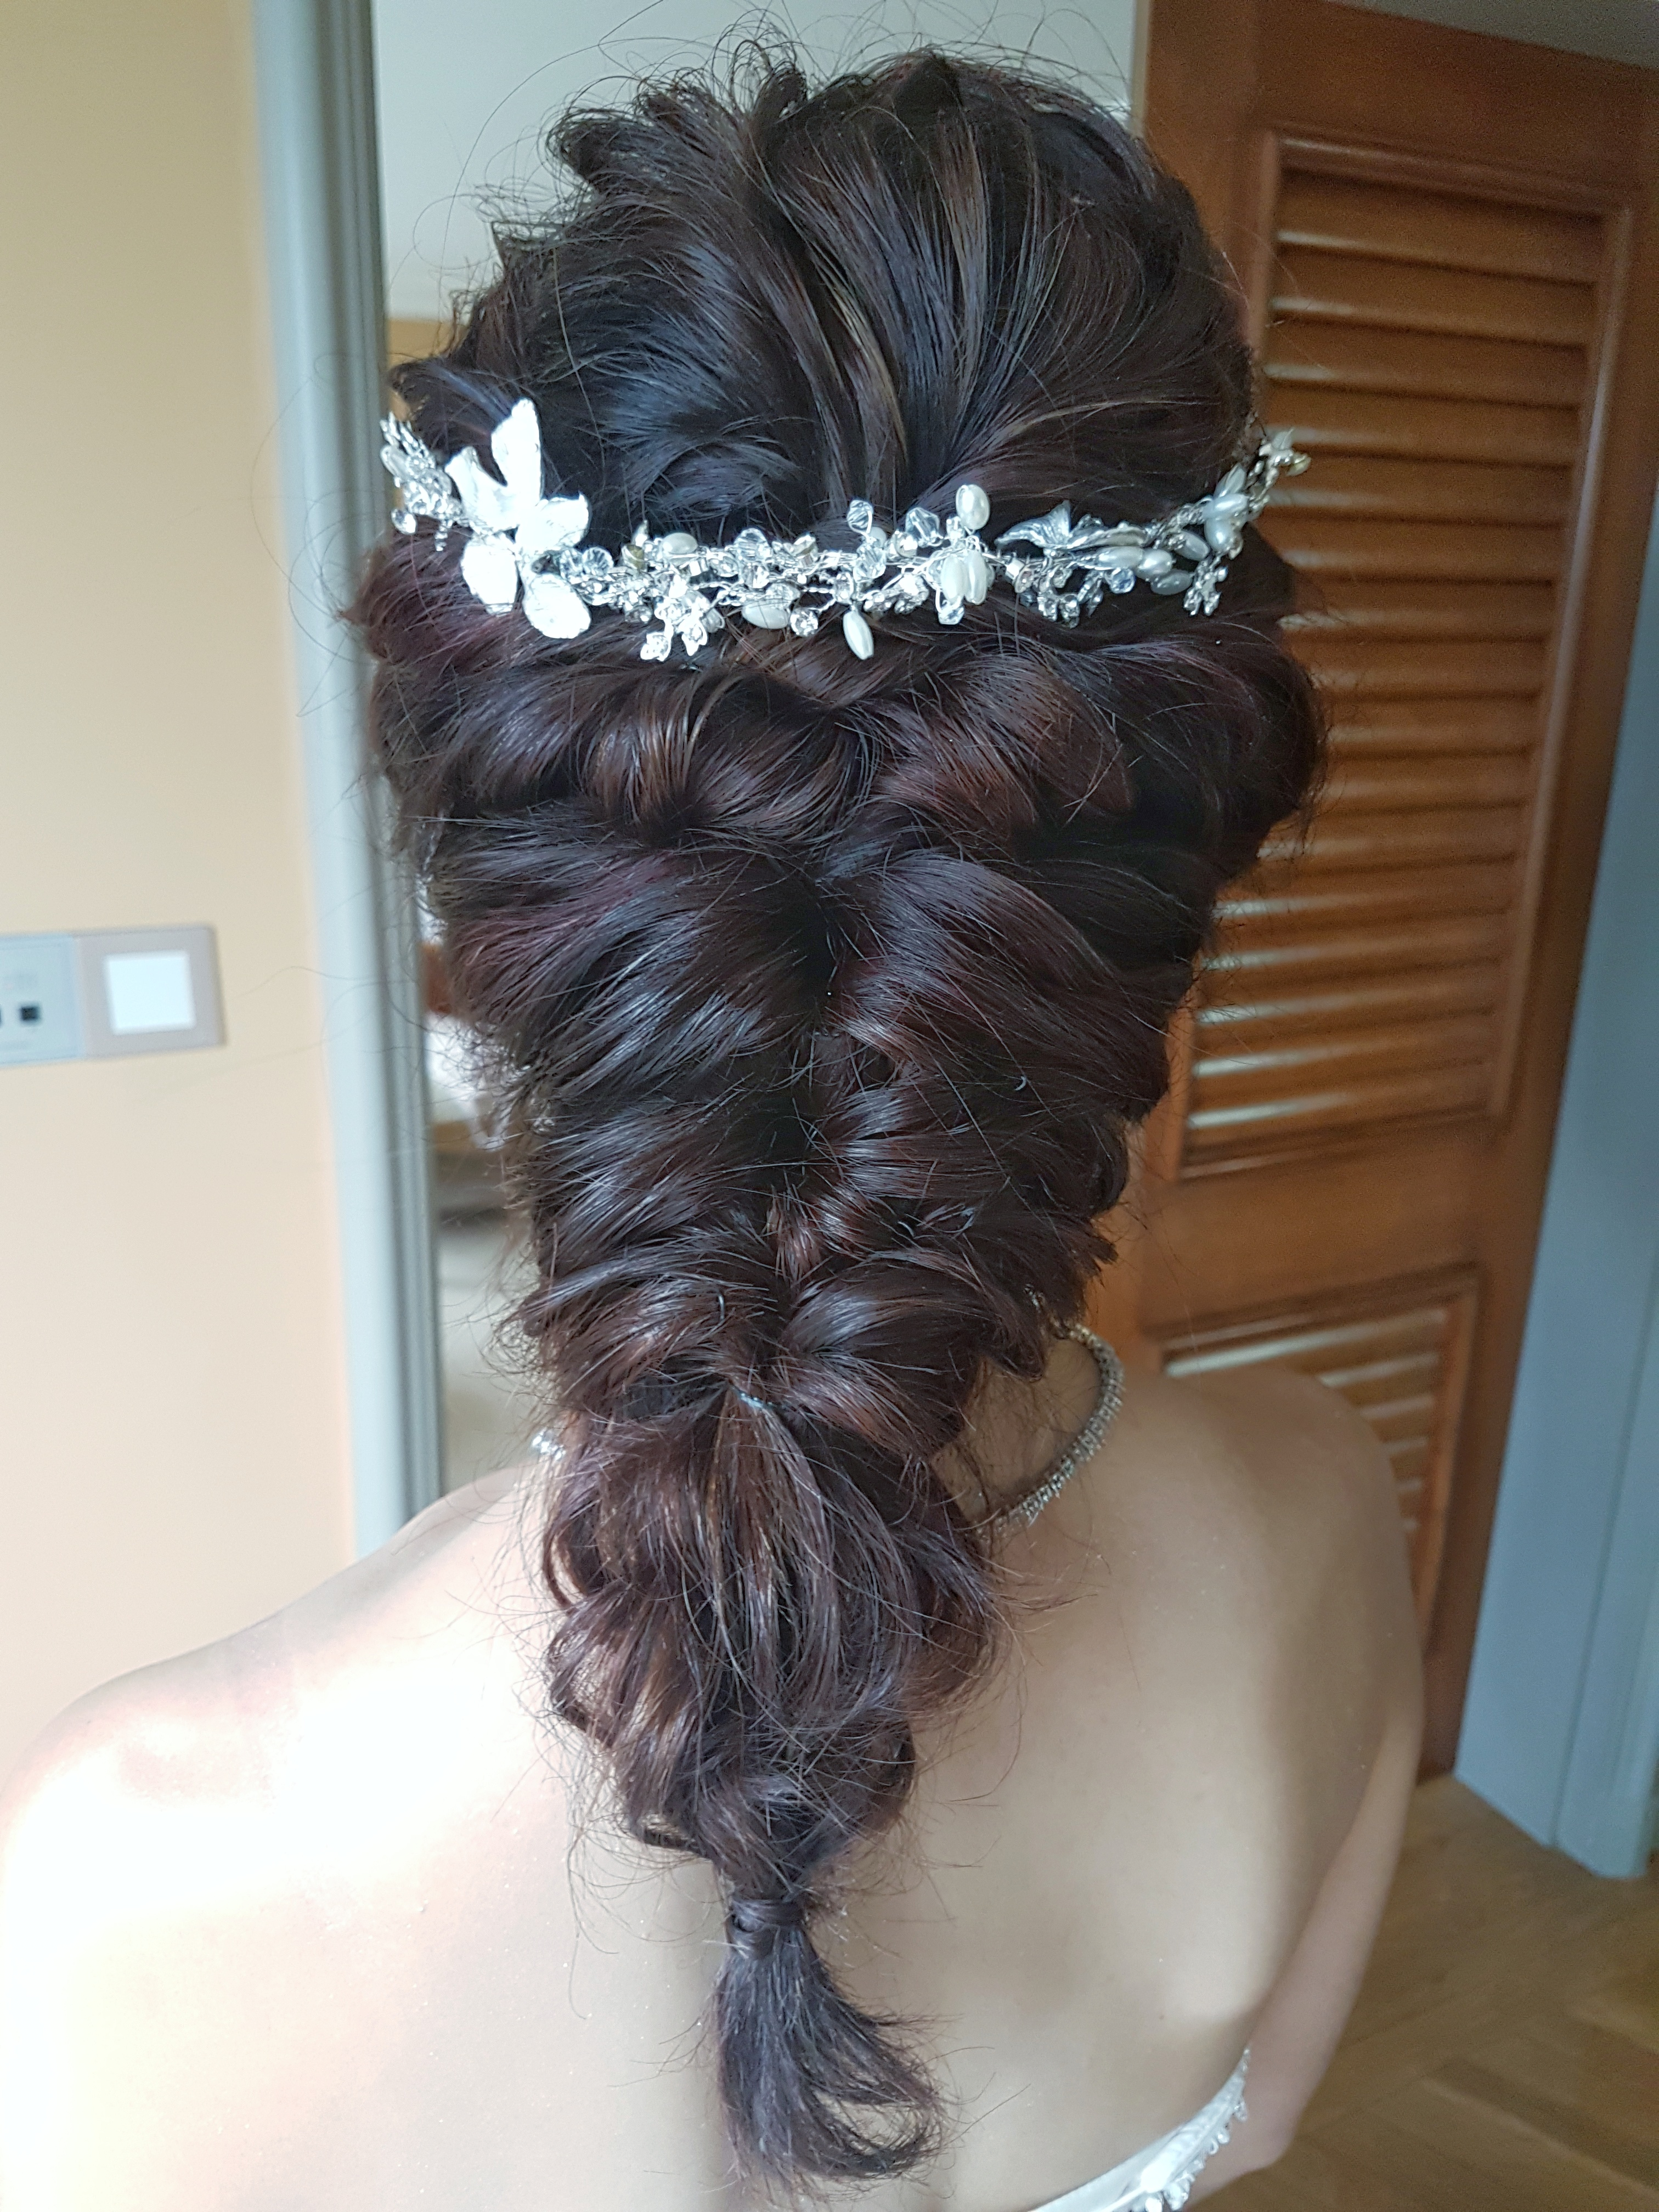 Braided style